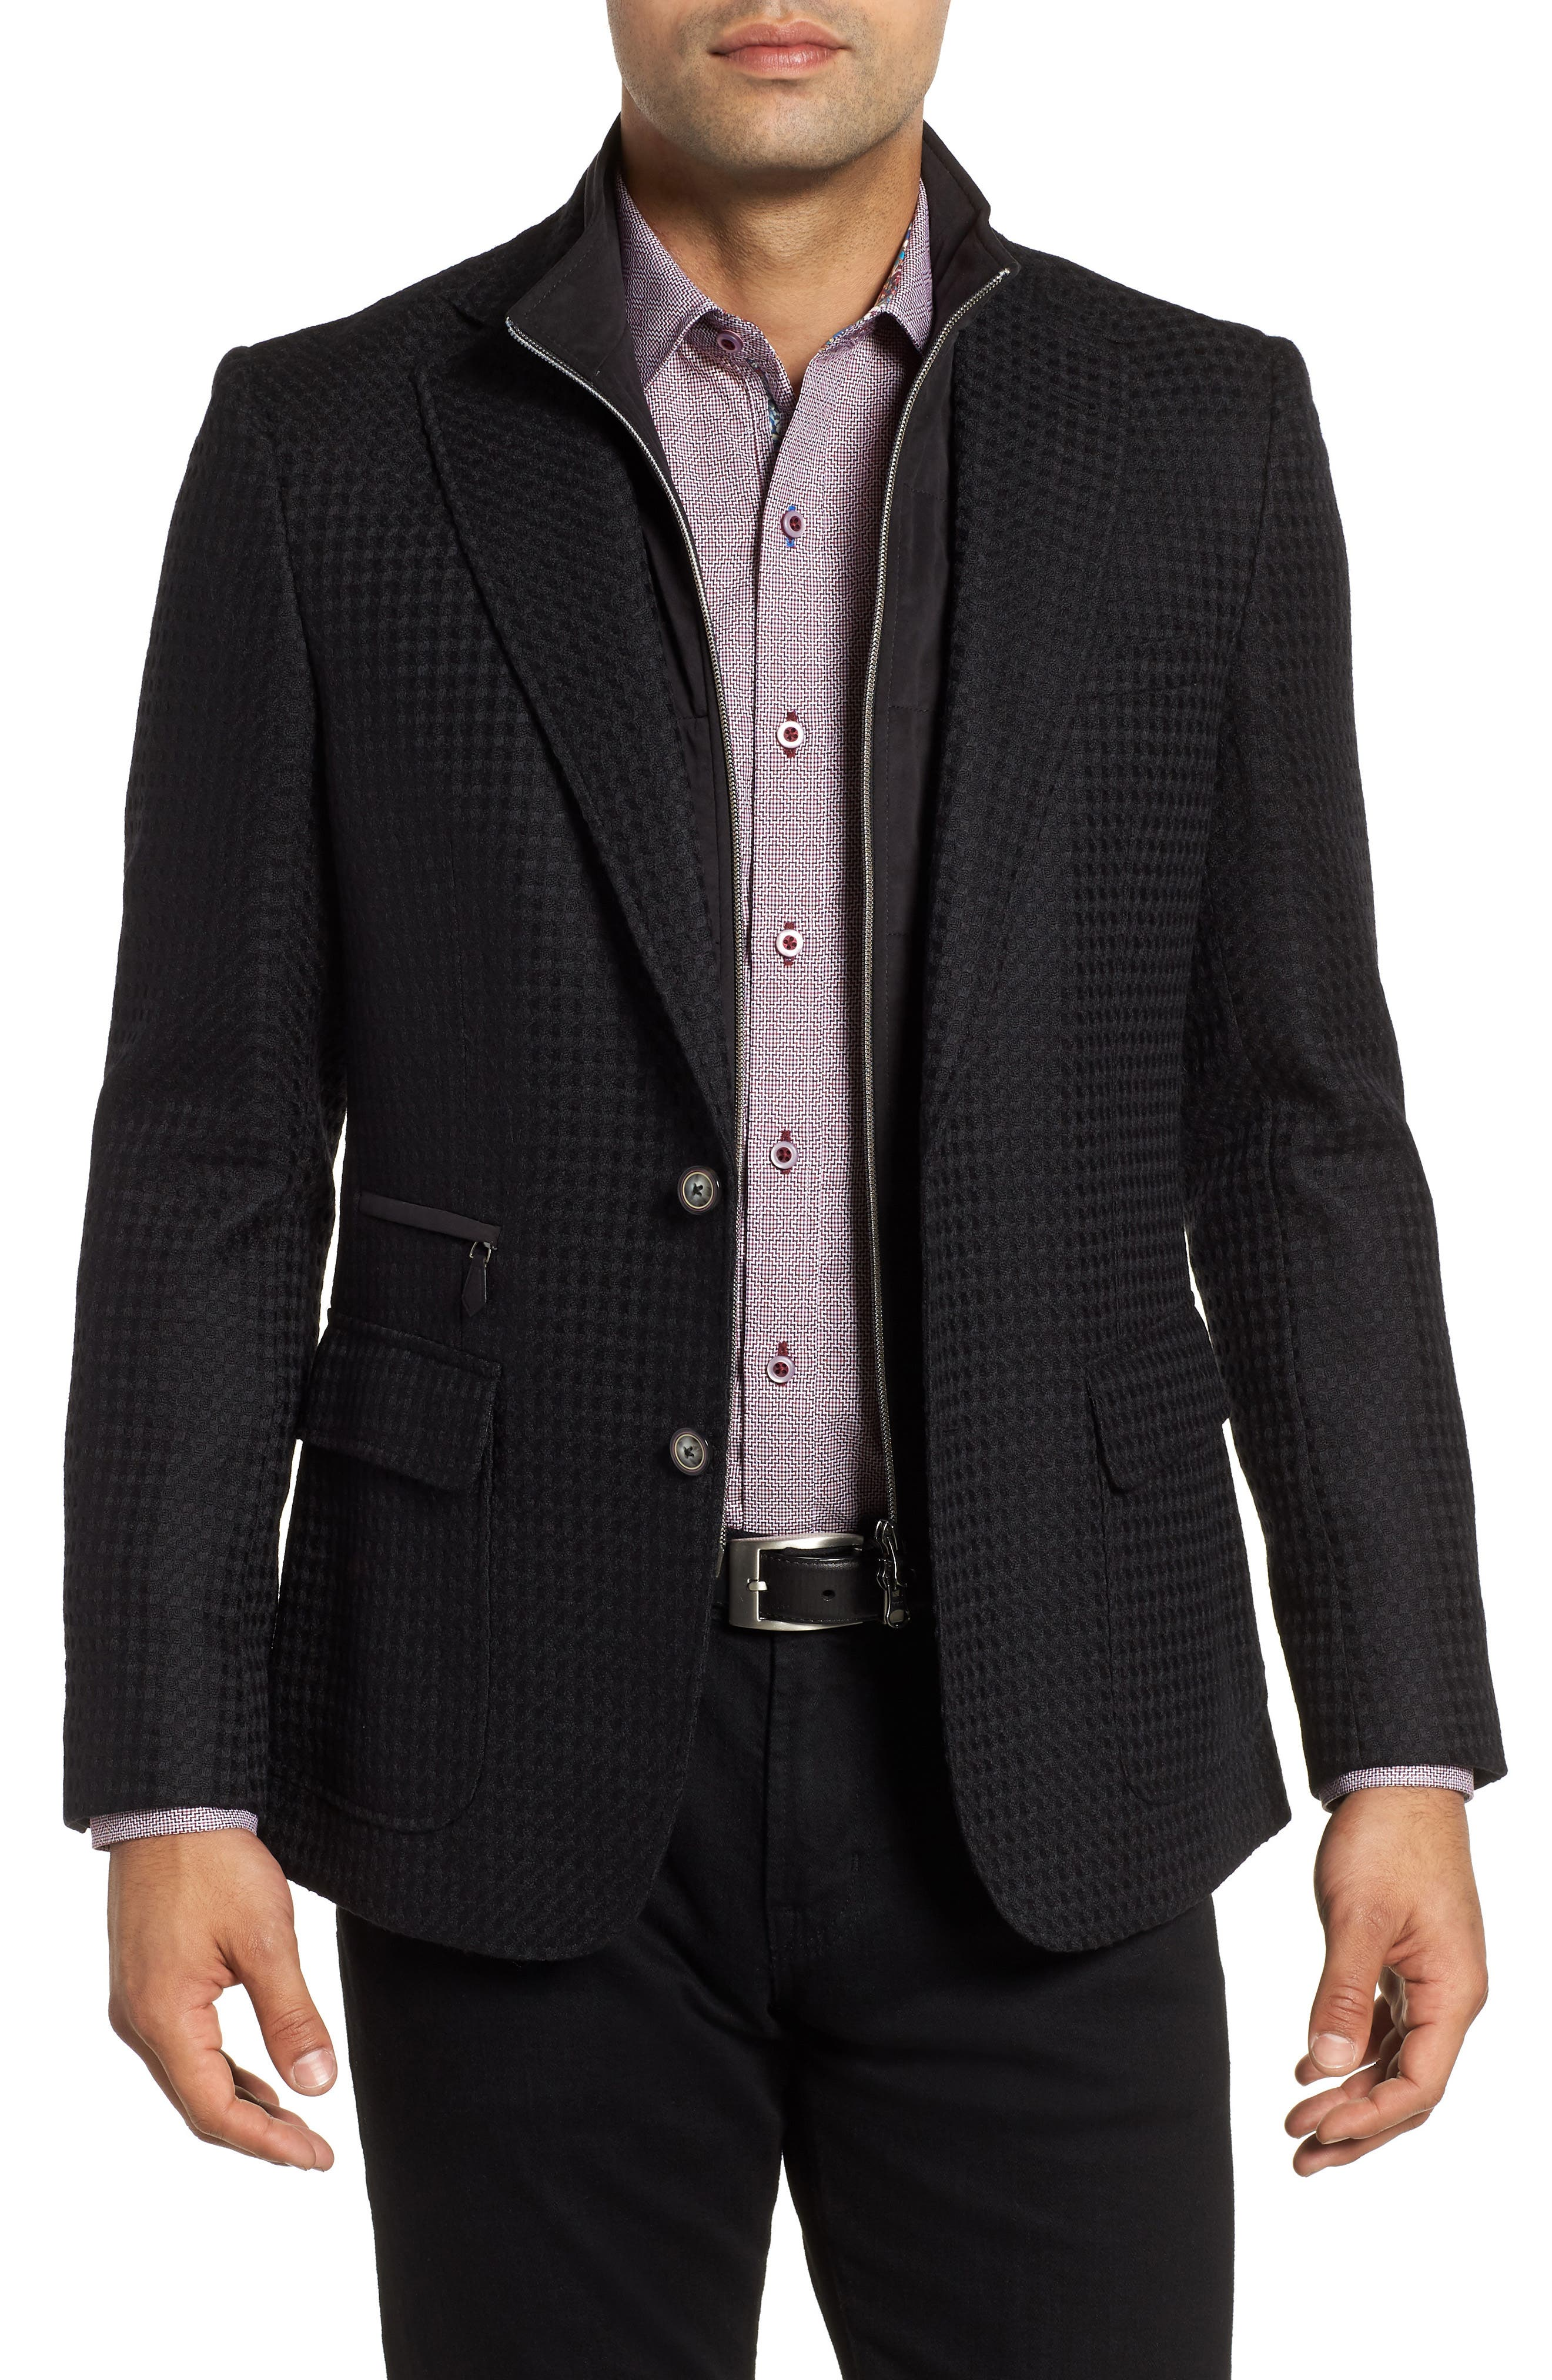 Downhill Tailored Wool Sport Coat,                             Main thumbnail 1, color,                             001